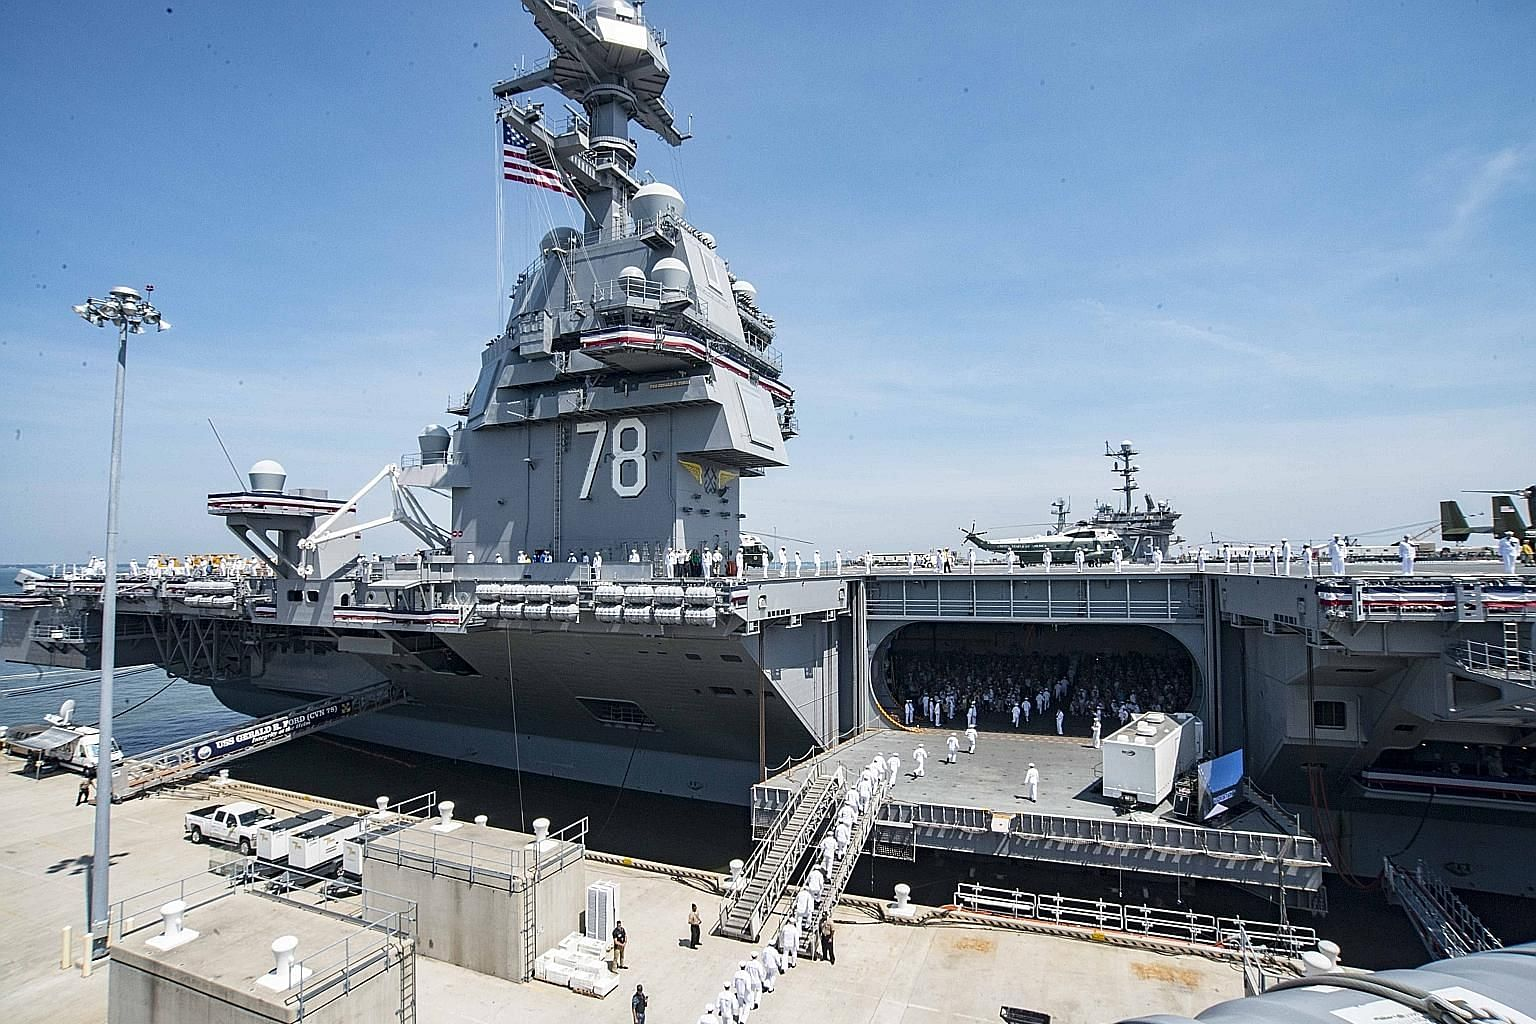 The nuclear-powered Gerald R. Ford during its commissioning last Saturday. The superstructure is smaller and farther back on the ship, allowing it to launch more flight missions a day using a new catapult and landing system.